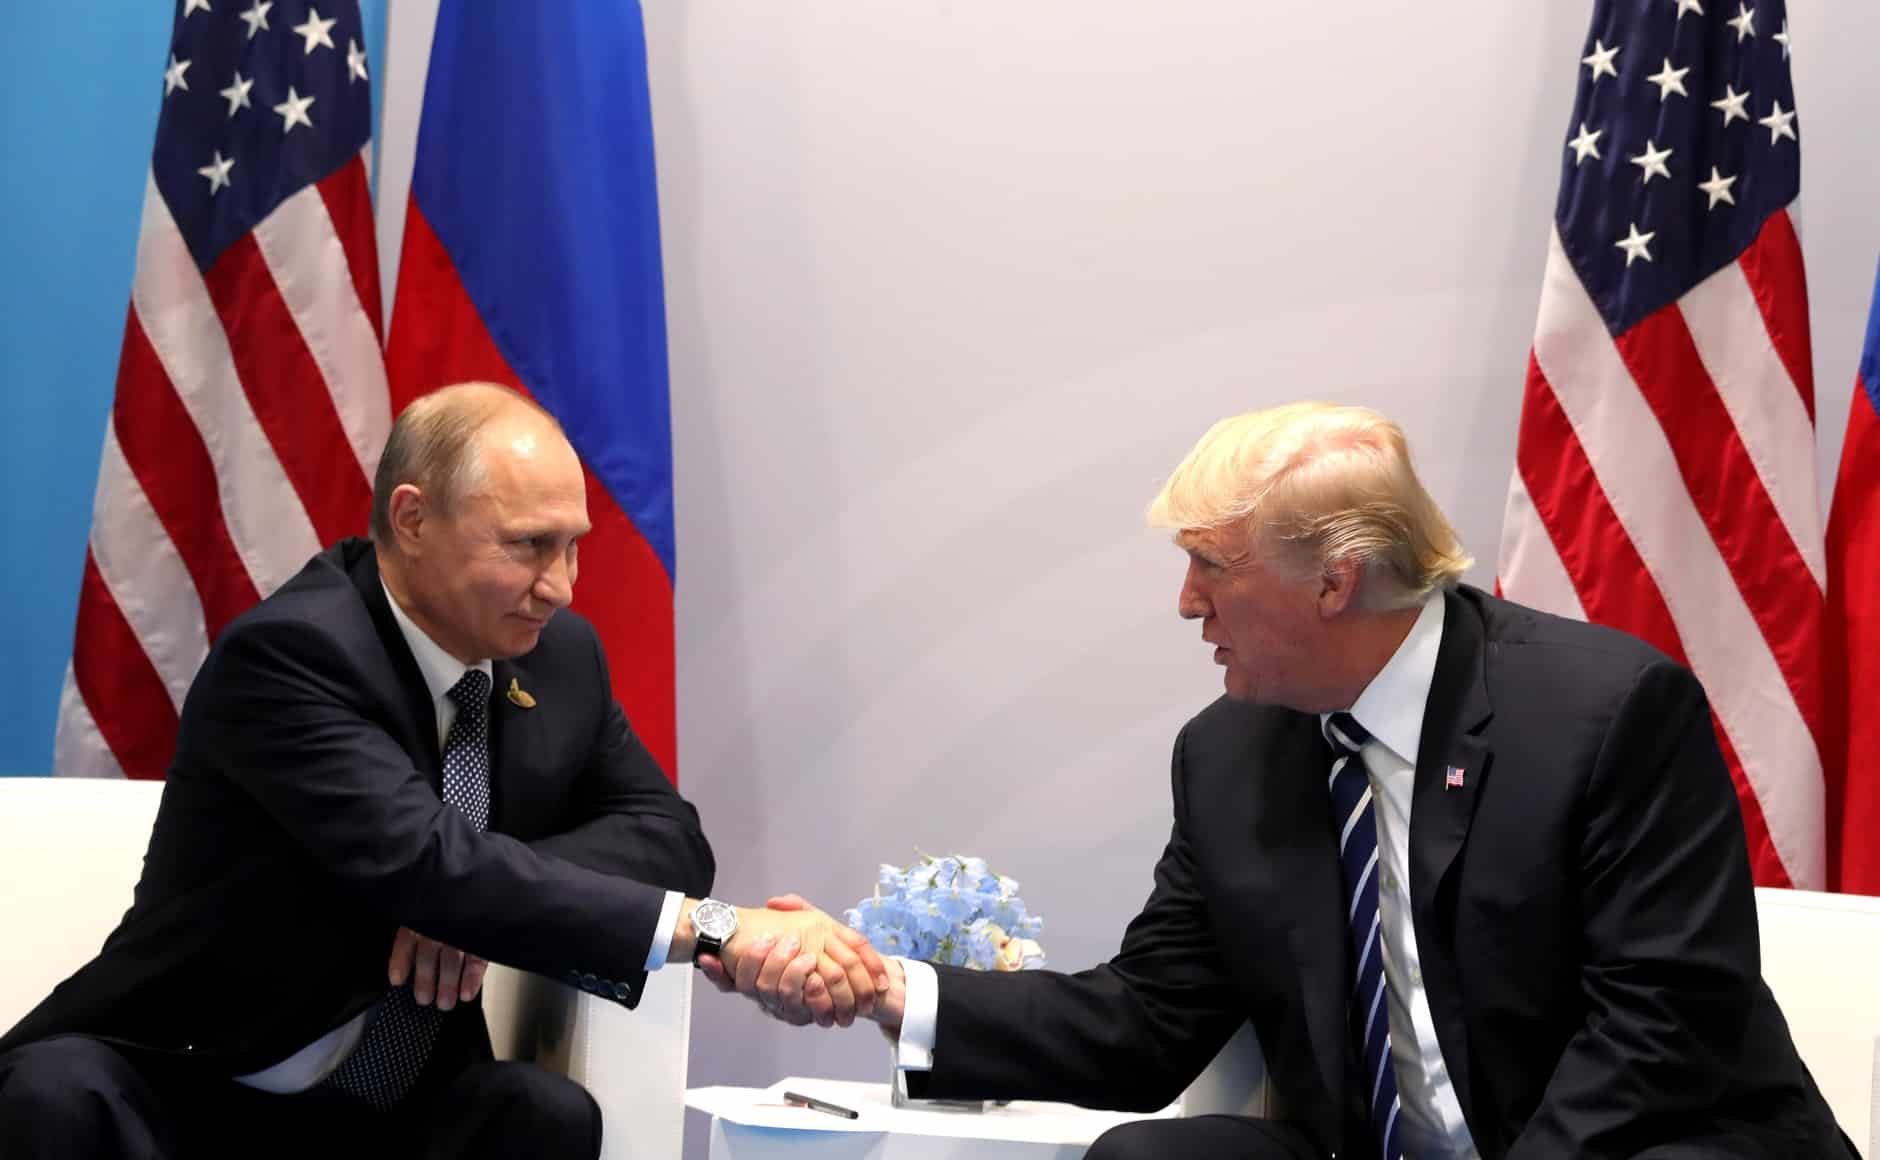 Vladimir Poutine et Donald Trump au sommet de Hambourg. Source Photo: Wikipedia